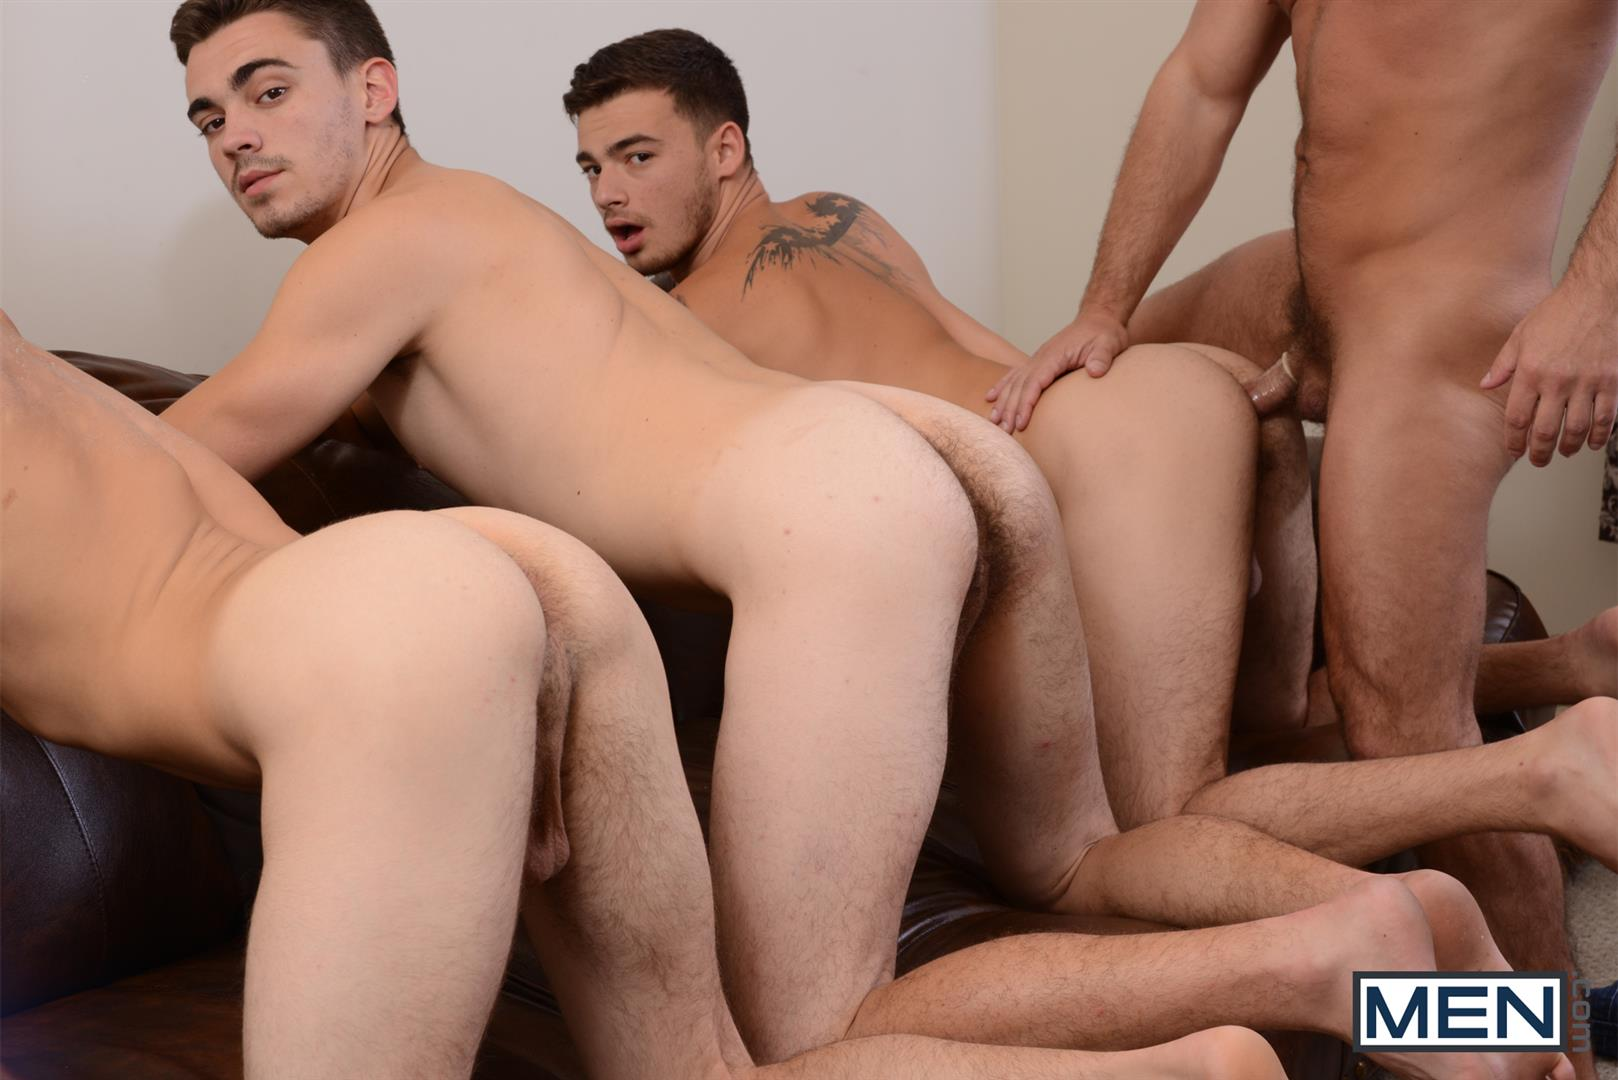 Men Jizz Orgy Asher Hawk and Dirk Caber and Johnny Rapid and Trevor Spade Triple Penetrated In the Ass Amateur Gay Porn 12 Stepfather Dirk Caber Gets TRIPLE Penetrated By His Stepsons